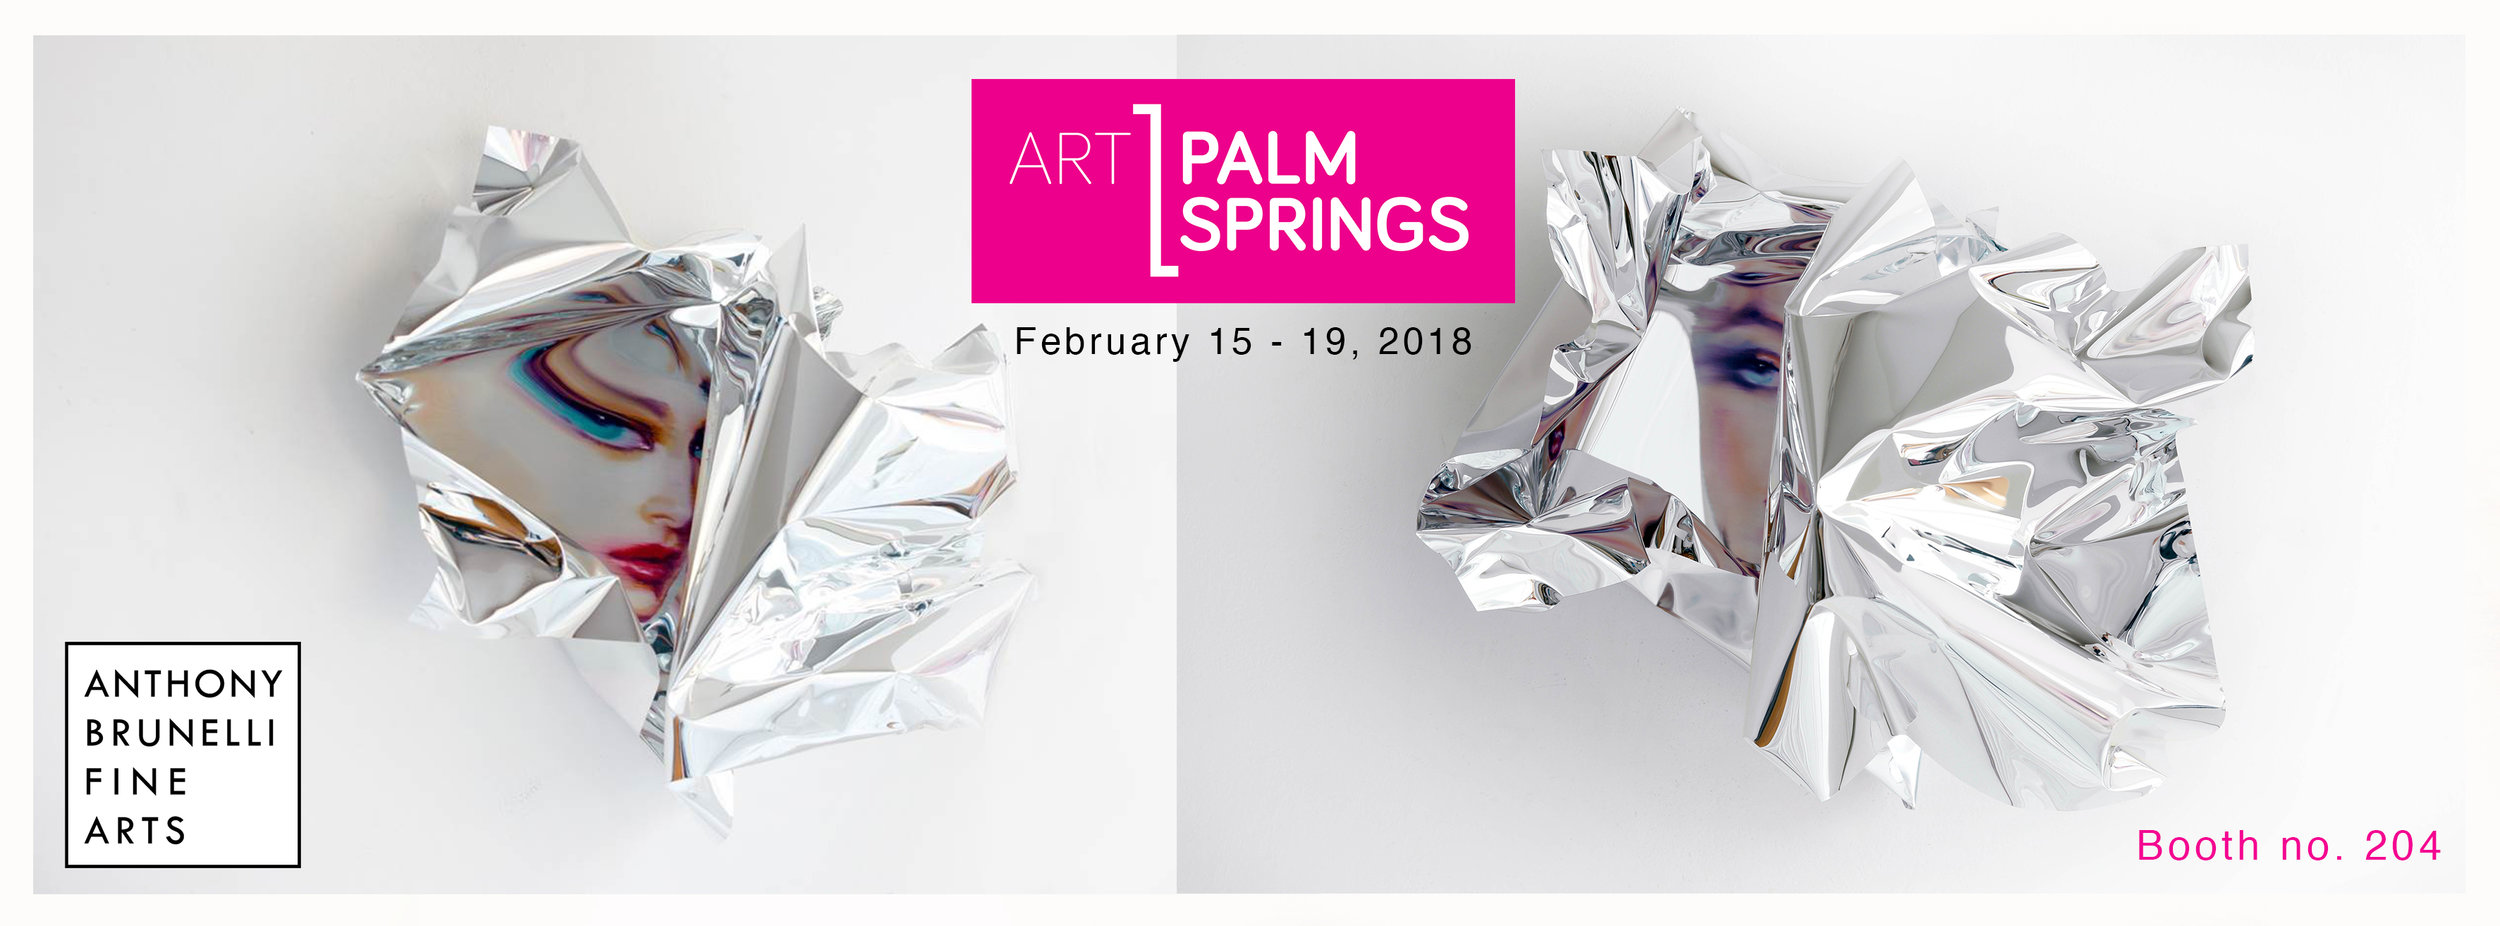 Art_Palm_Springs_2018-FB_Banner.jpg